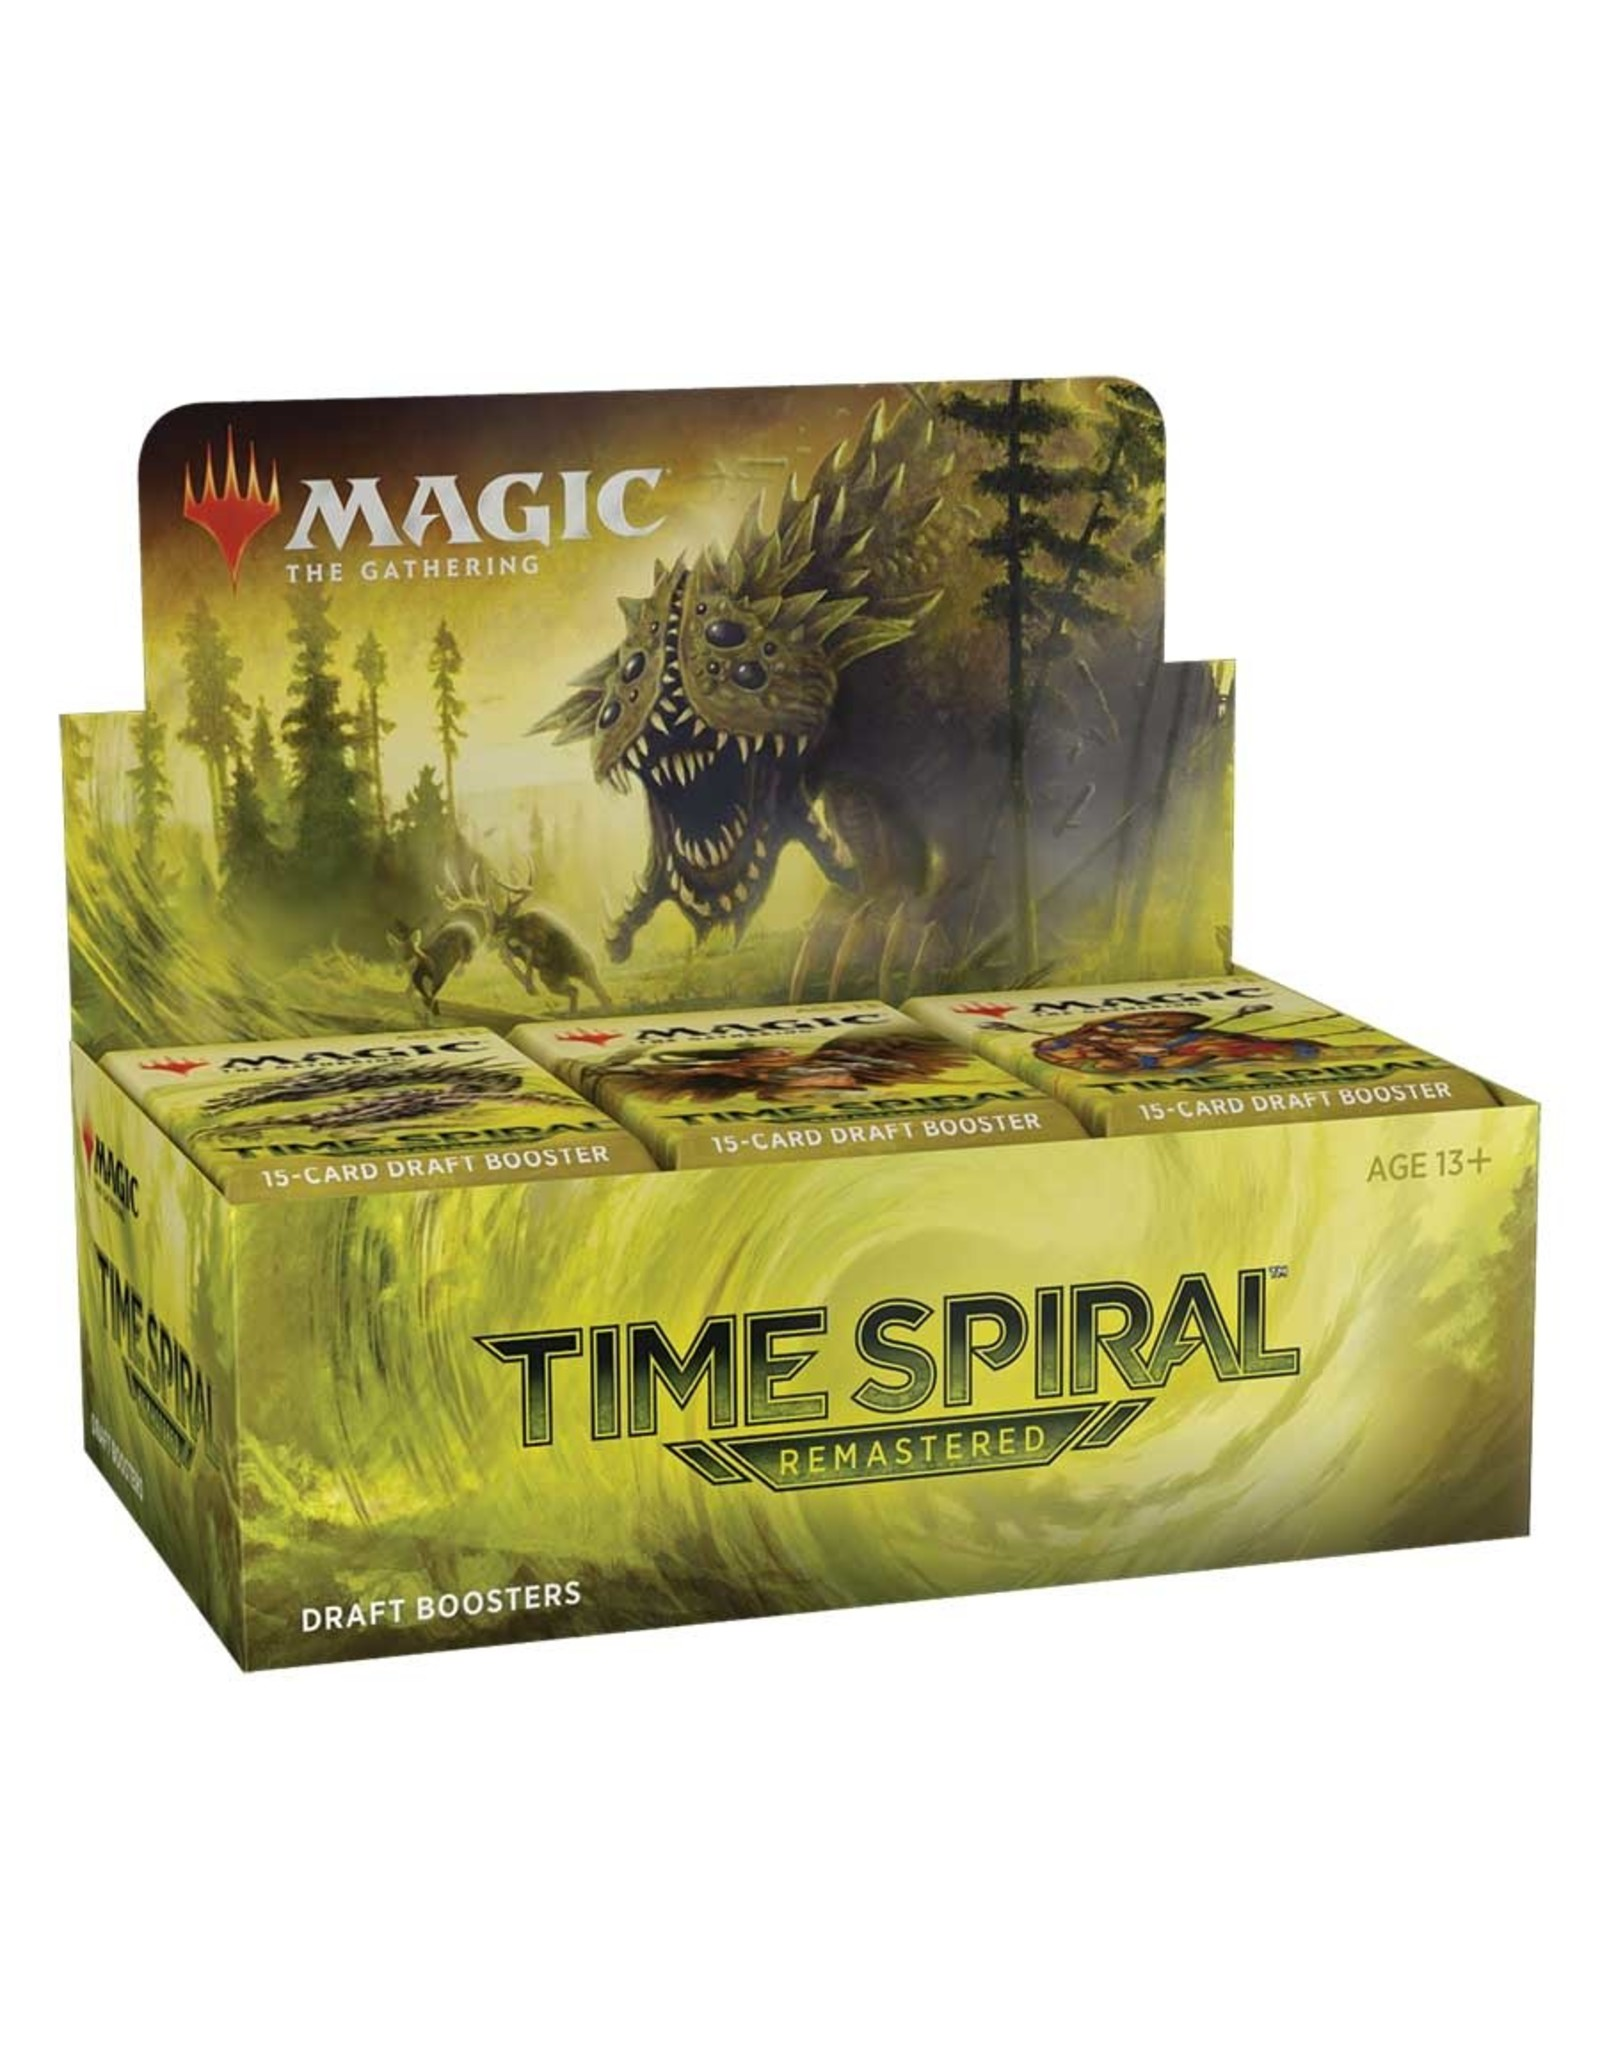 WIZARDS OF THE COAST MAGIC THE GATHERING TIME SPIRAL REMASTERED DRAFT BOOSTER BOX PRE-ORDER